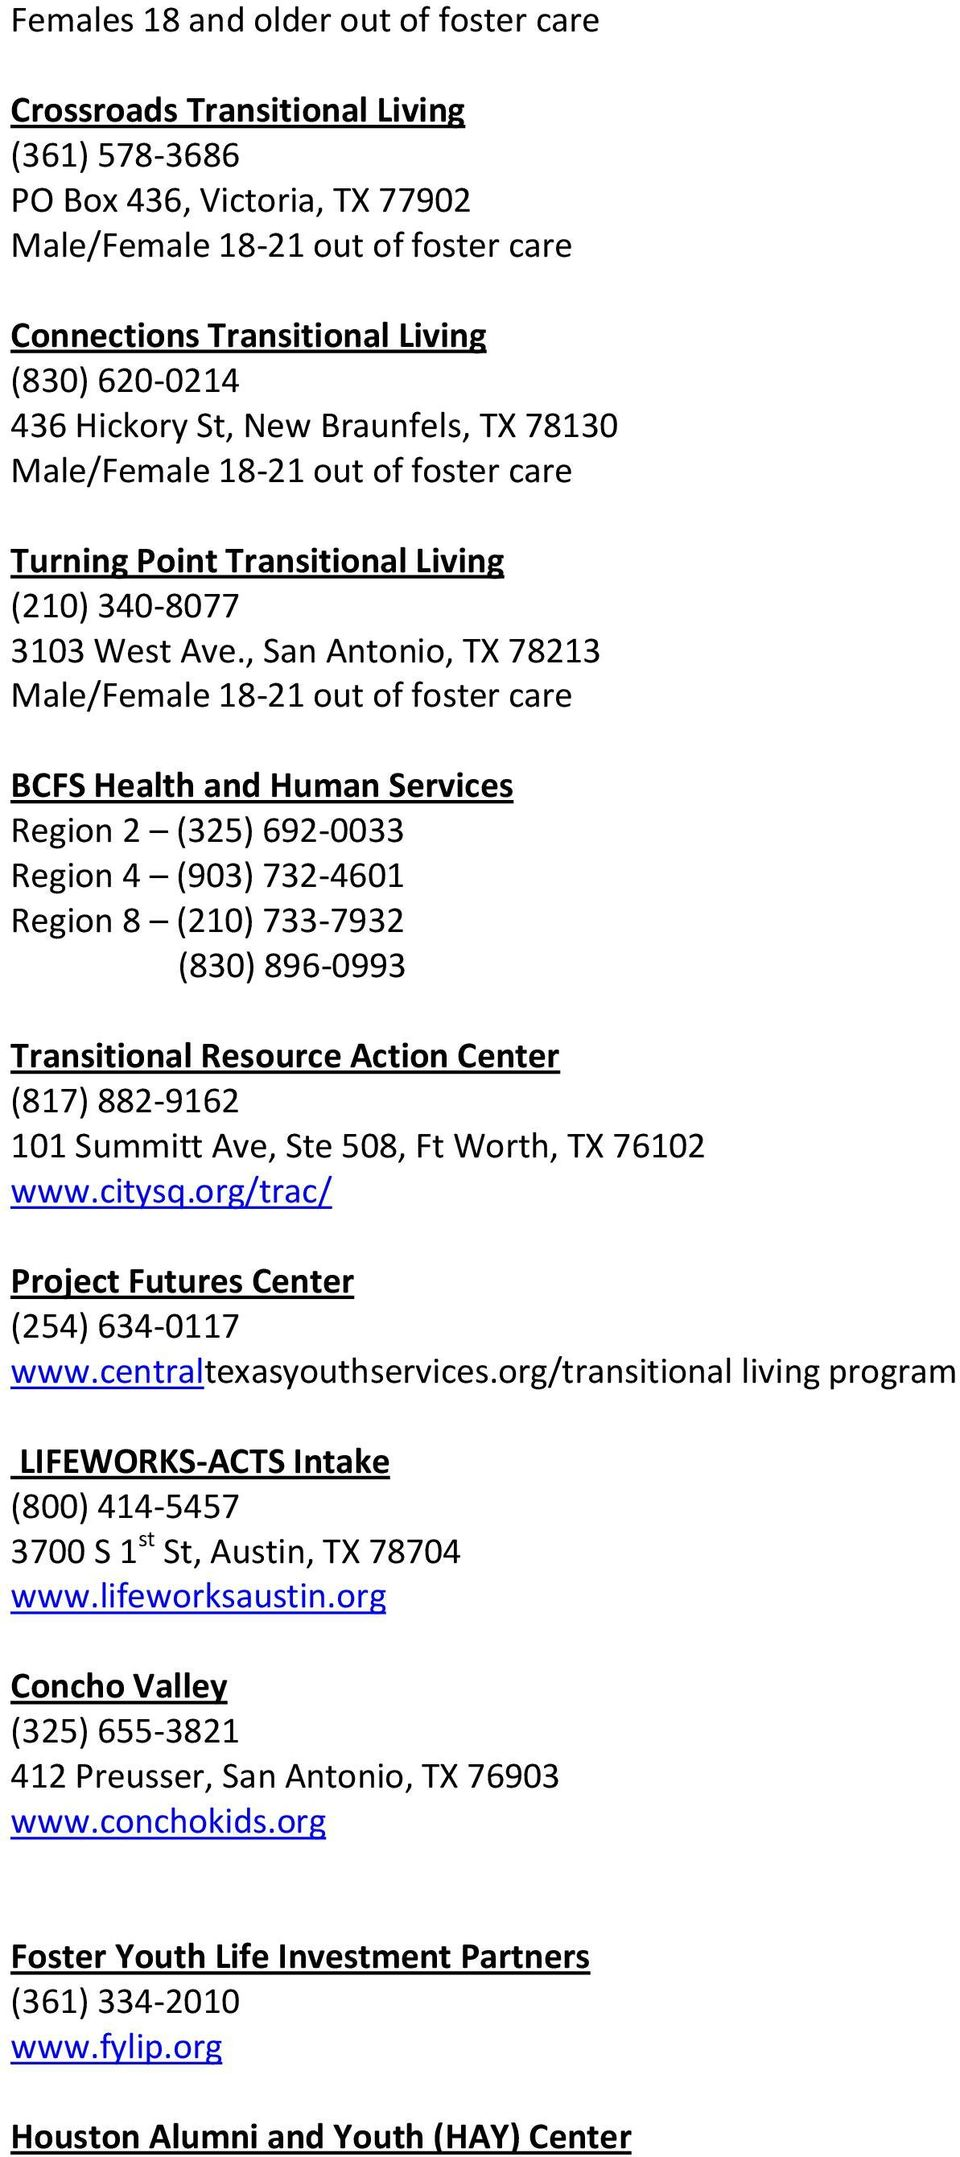 , San Antonio, TX 78213 Male/Female 18-21 out of foster care BCFS Health and Human Services Region 2 (325) 692-0033 Region 4 (903) 732-4601 Region 8 (210) 733-7932 (830) 896-0993 Transitional